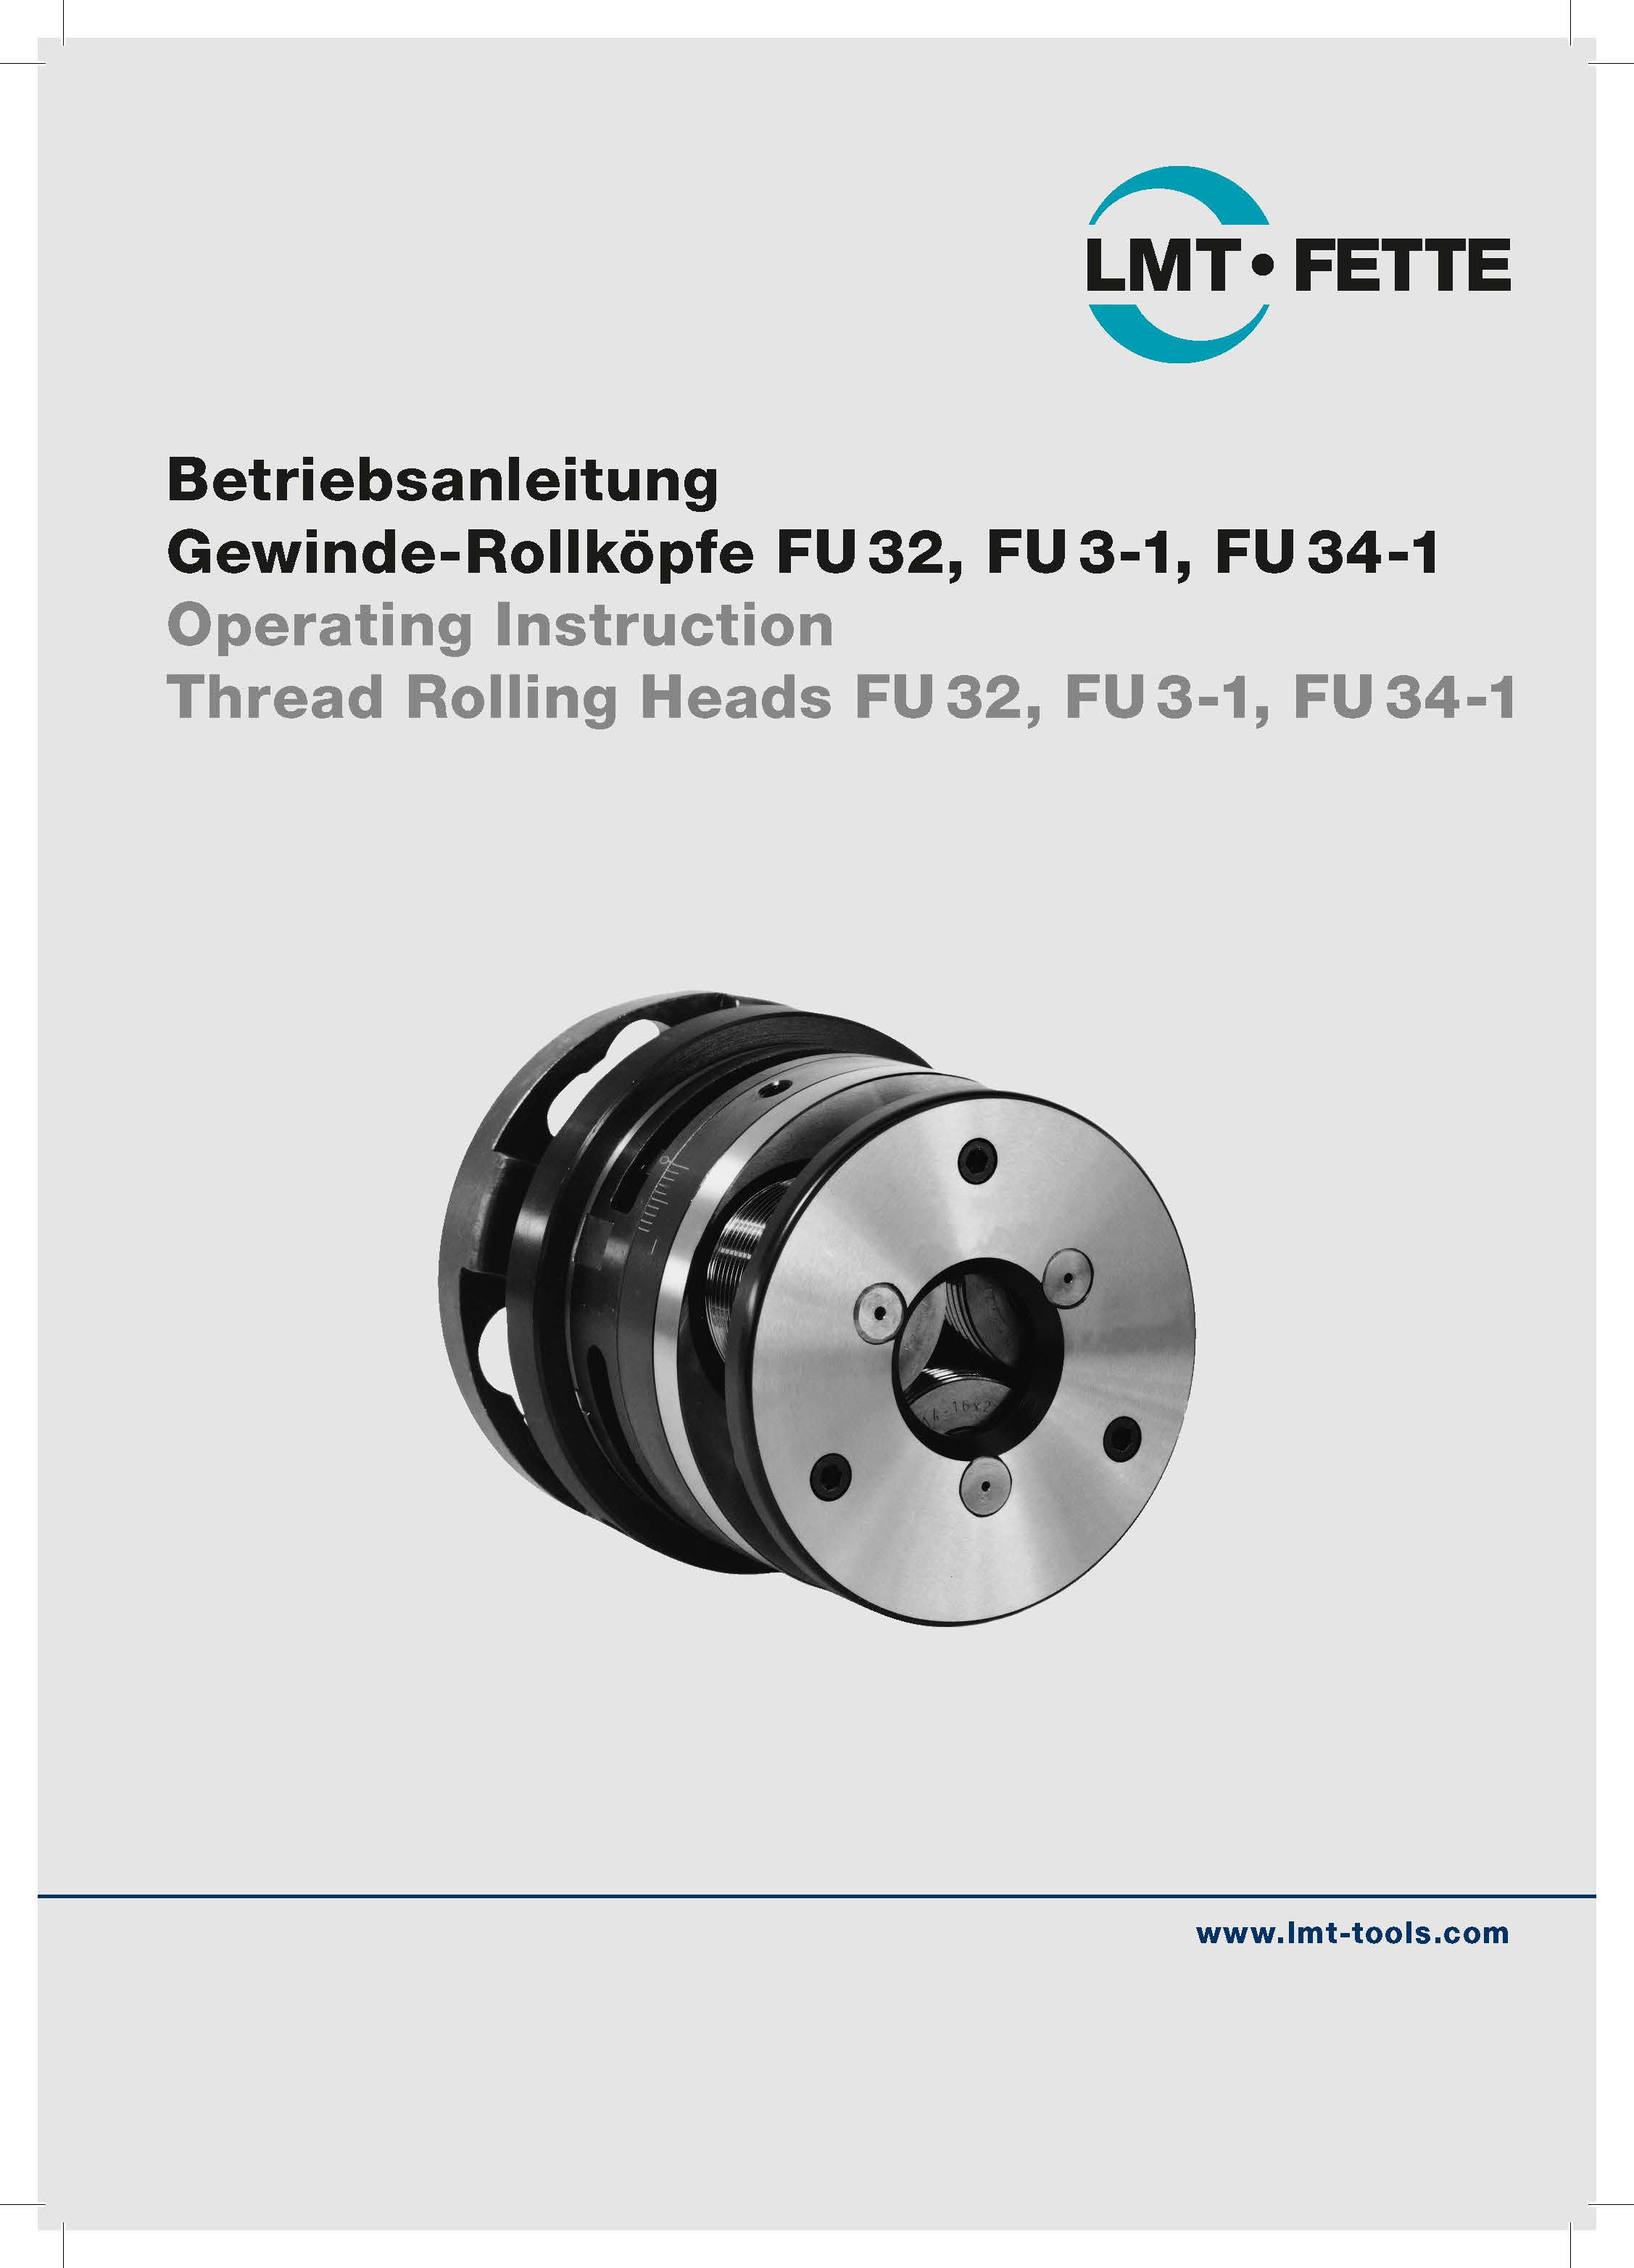 Operating Instruction Thread Rolling Heads FU 32-34